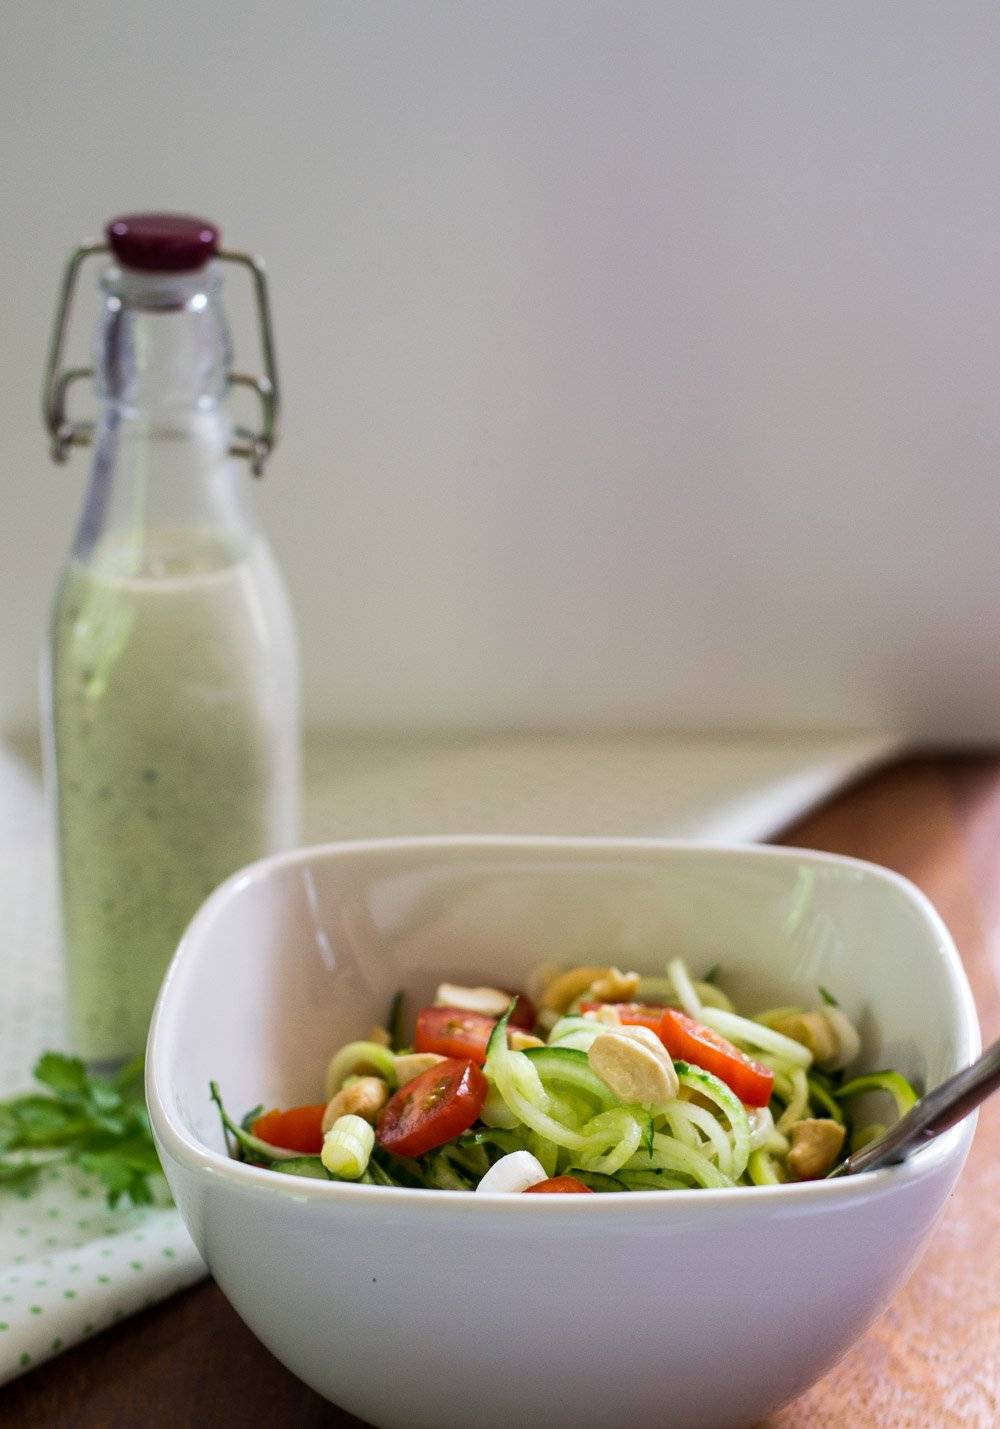 Spiralized courgette salad with vegan ranch dressing